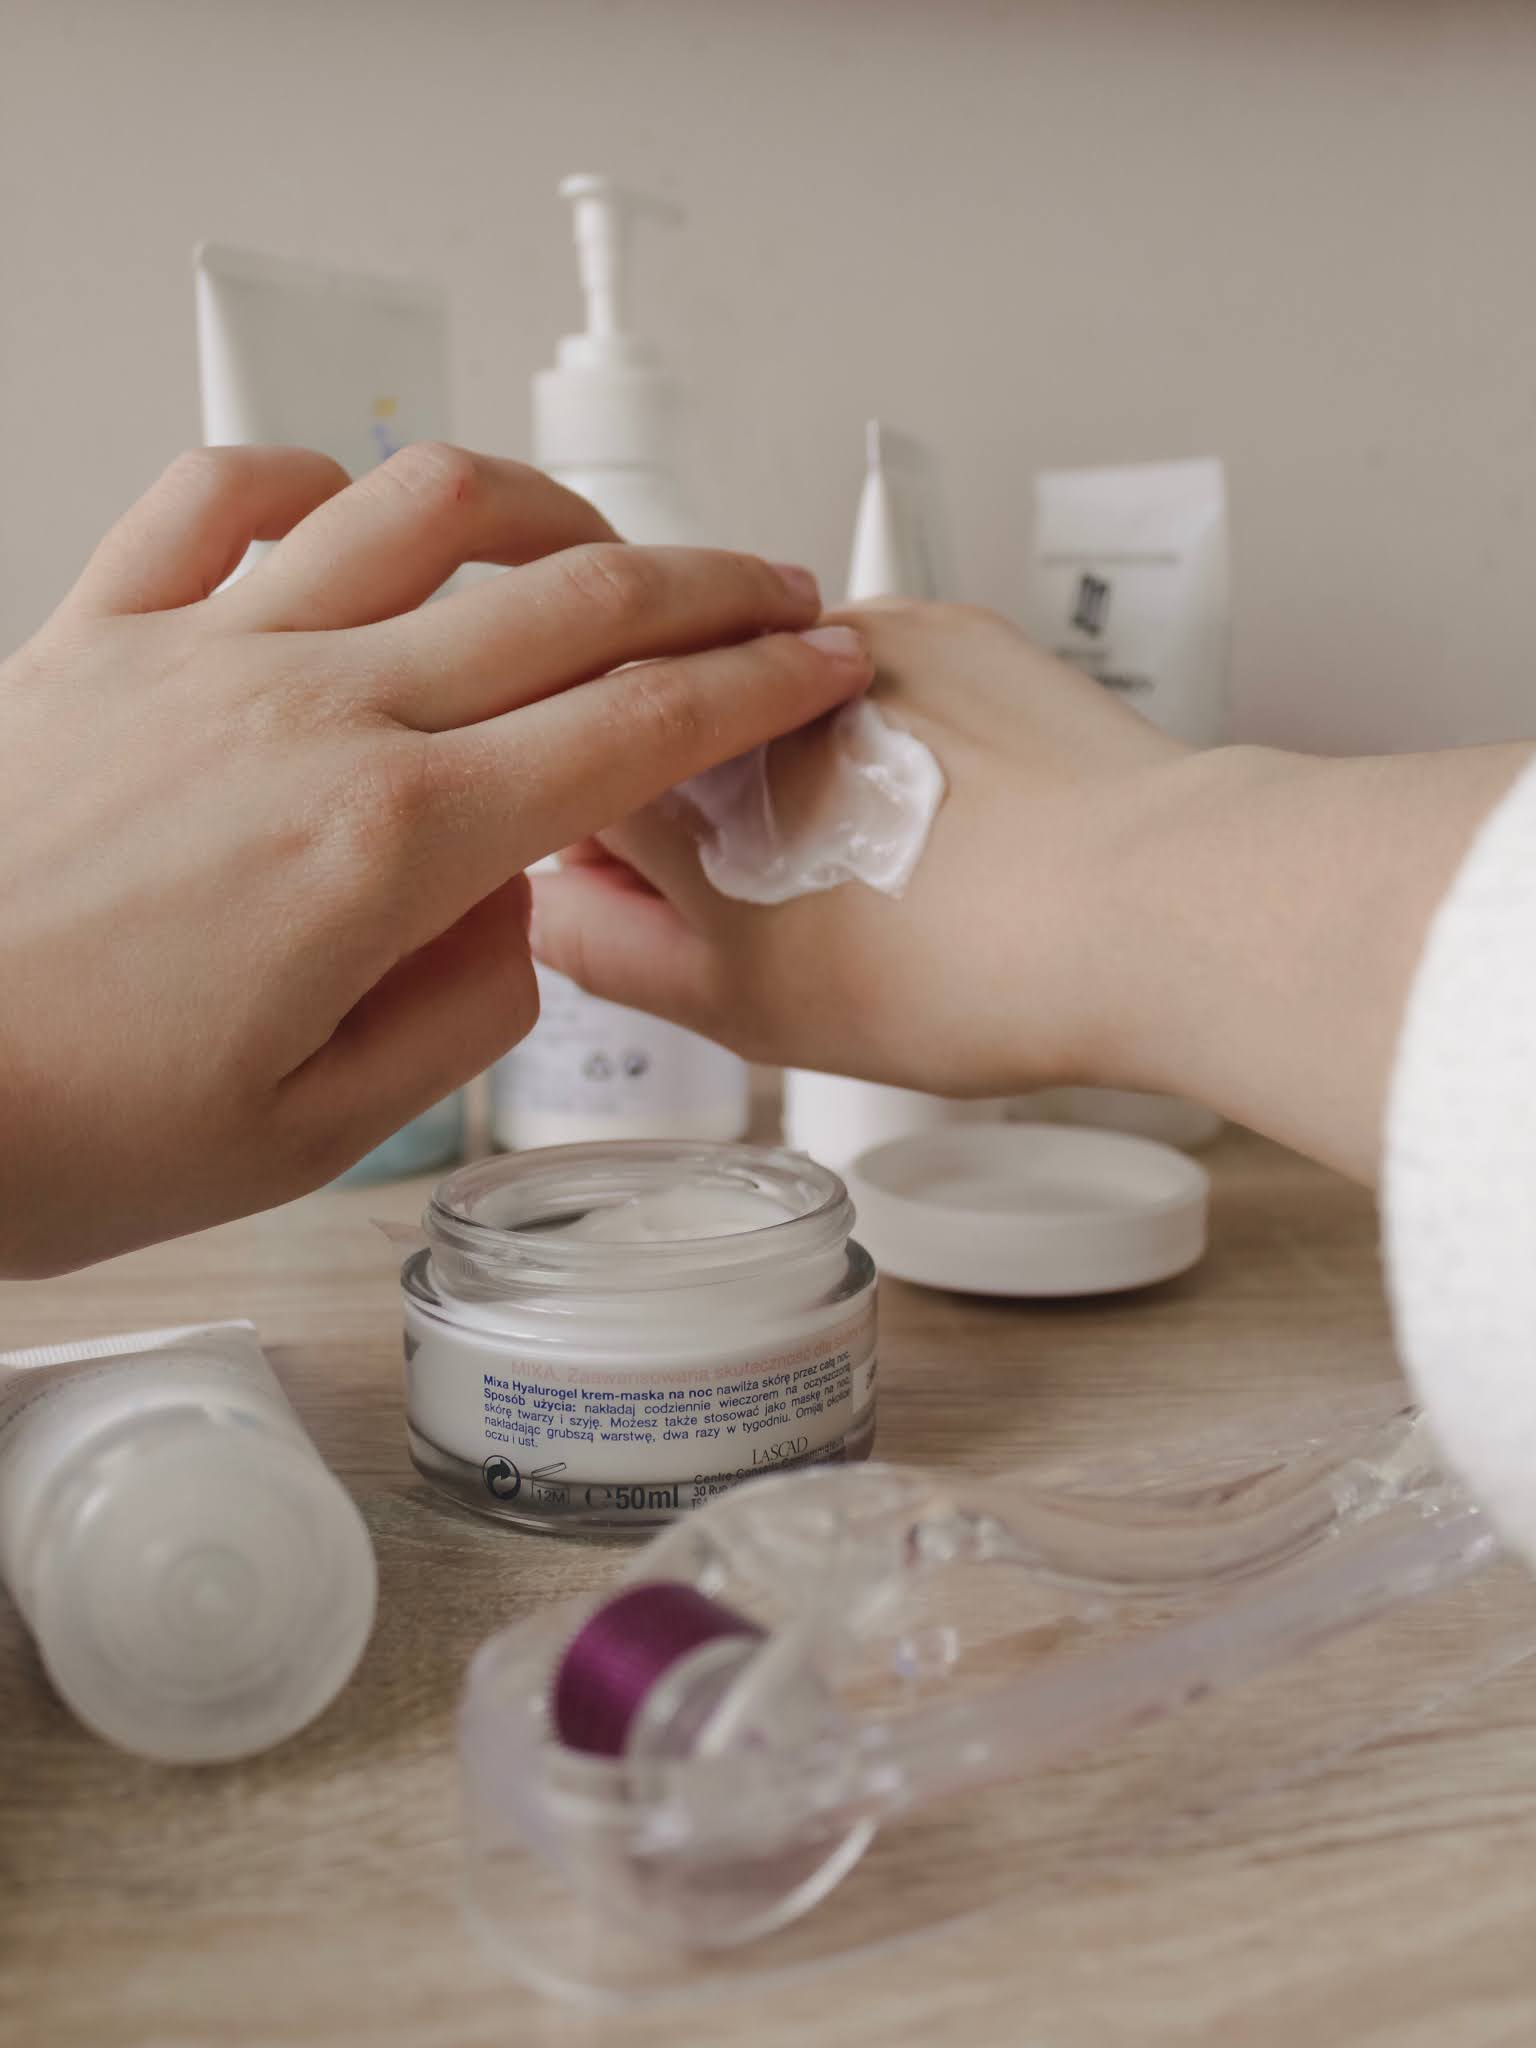 woman applying skincare cream to hand amongst other skincare items